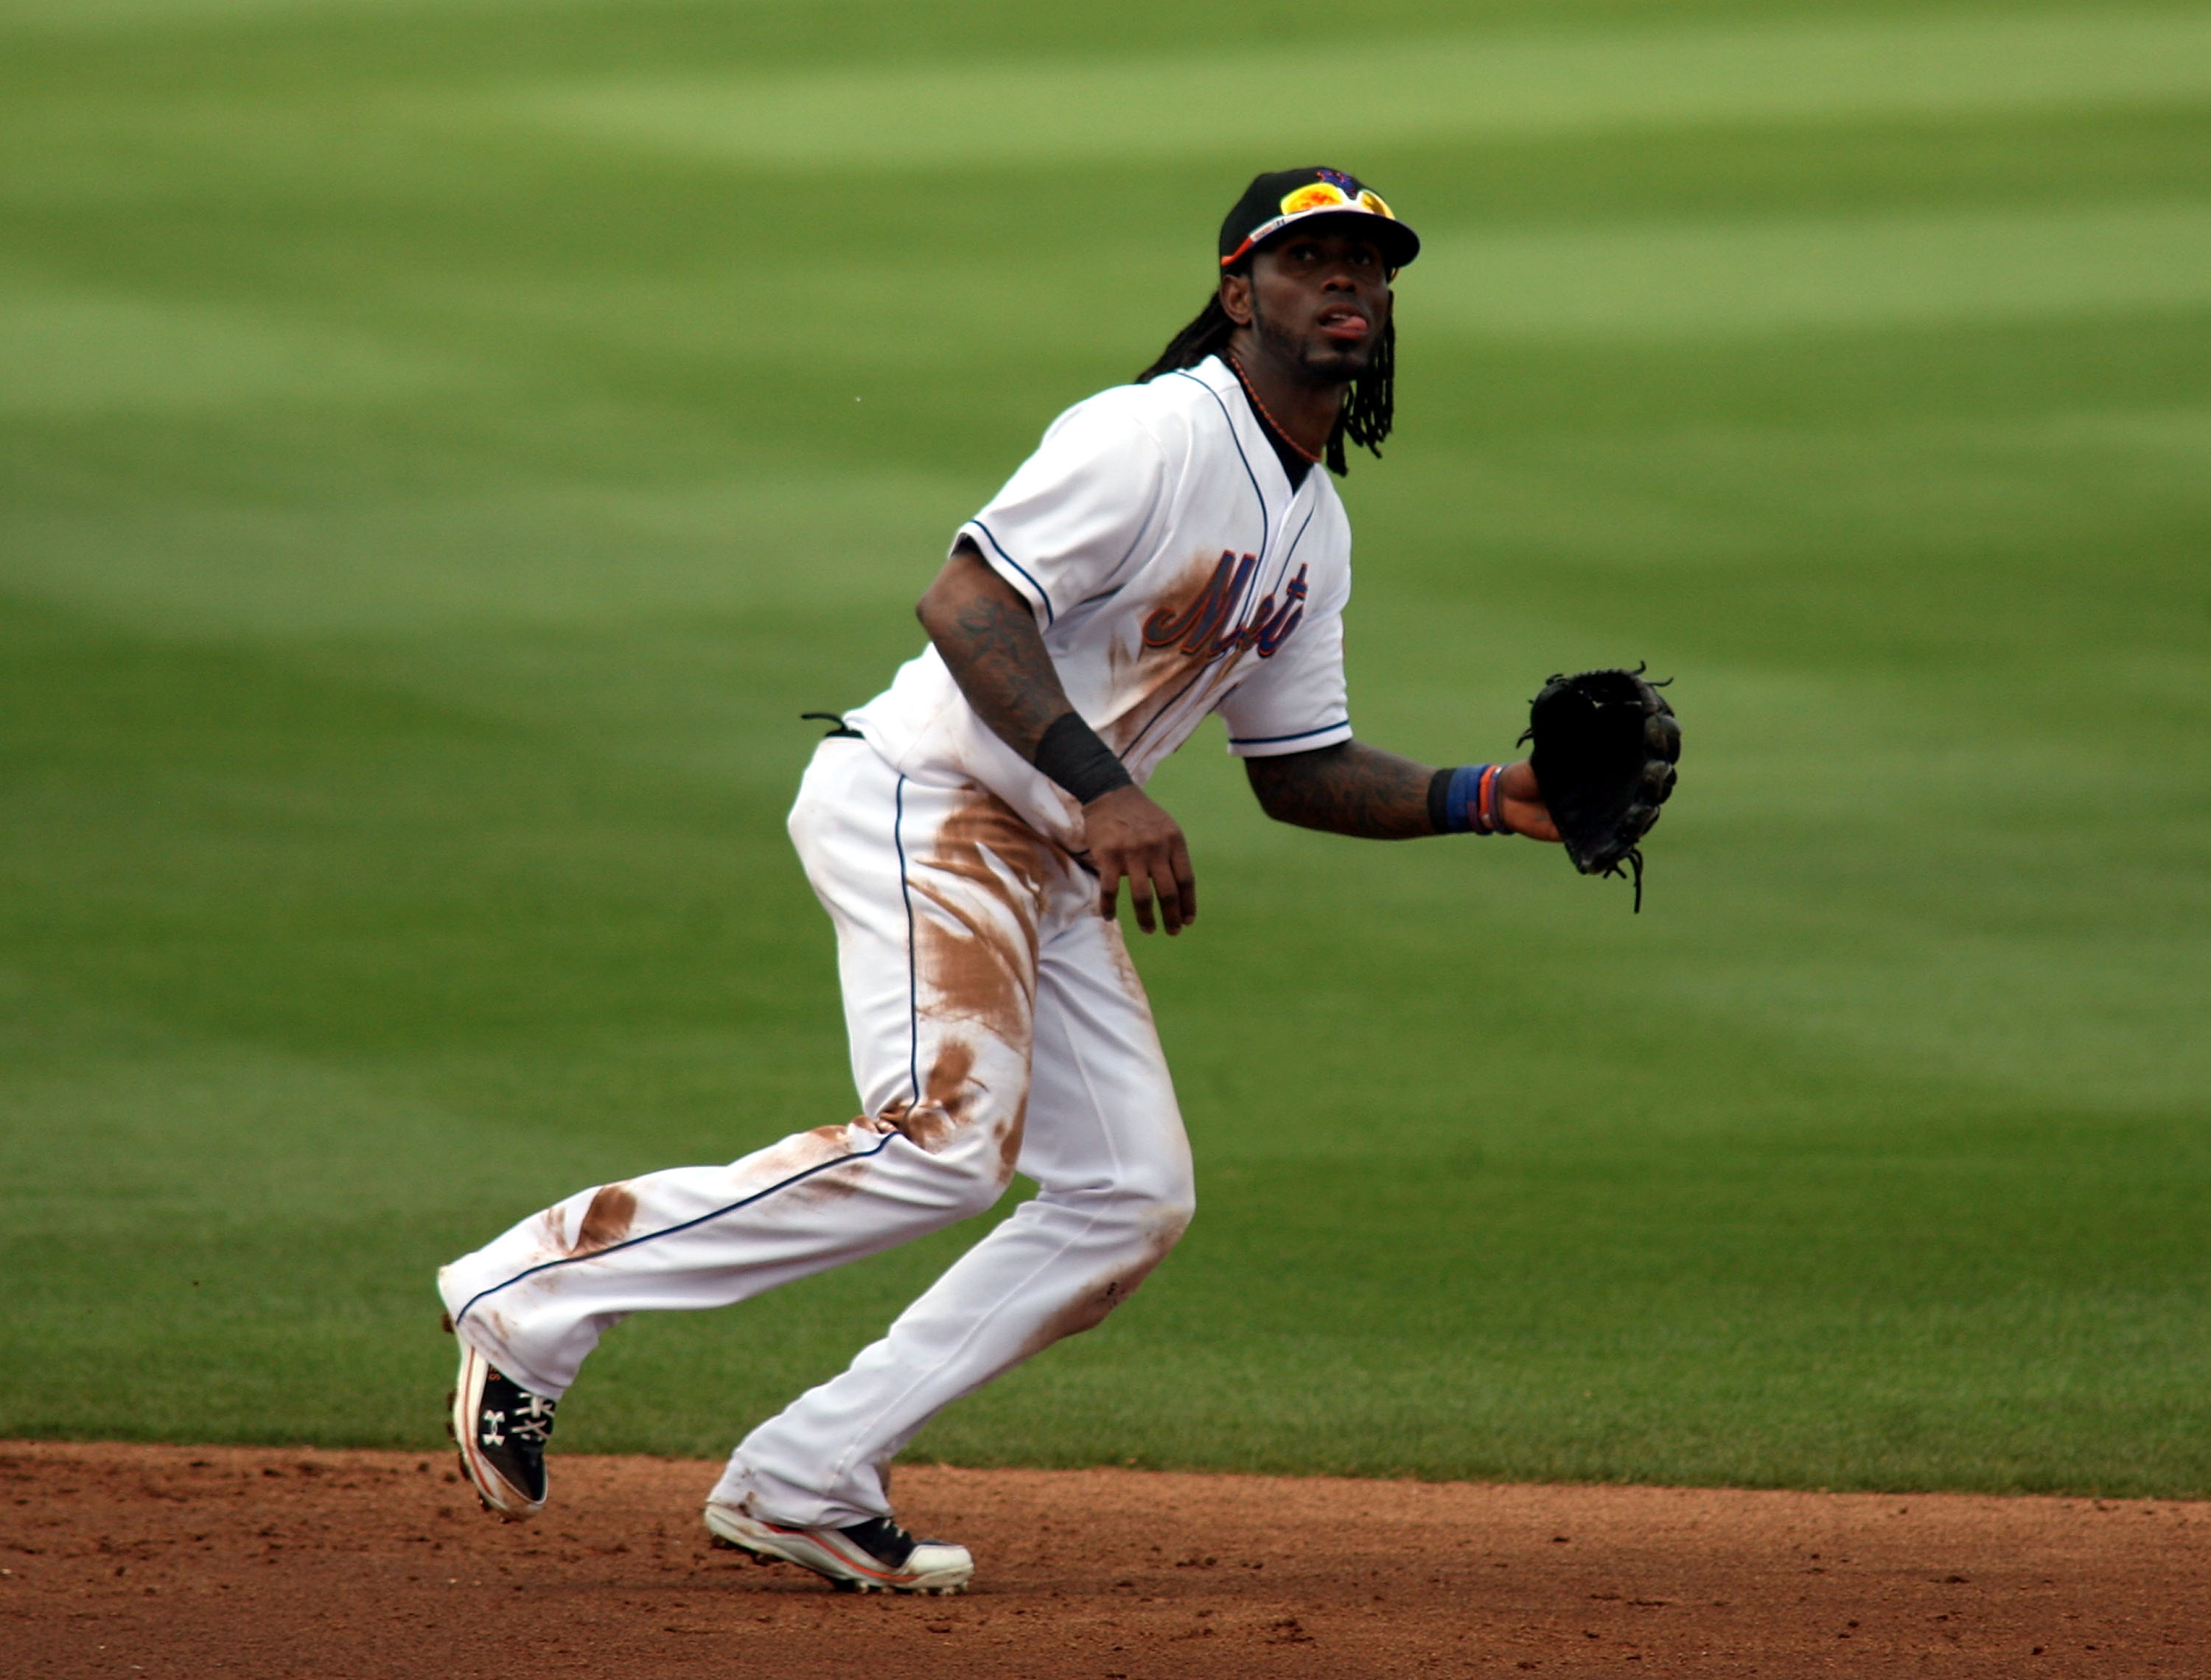 PORT ST. LUCIE, FL - MARCH 03: Shortstop Jose Reyes #7 of the New York Mets plays the field against the St. Louis Cardinals stealing second base at Digital Domain Park on March 3, 2011 in Port St. Lucie, Florida.  (Photo by Marc Serota/Getty Images)